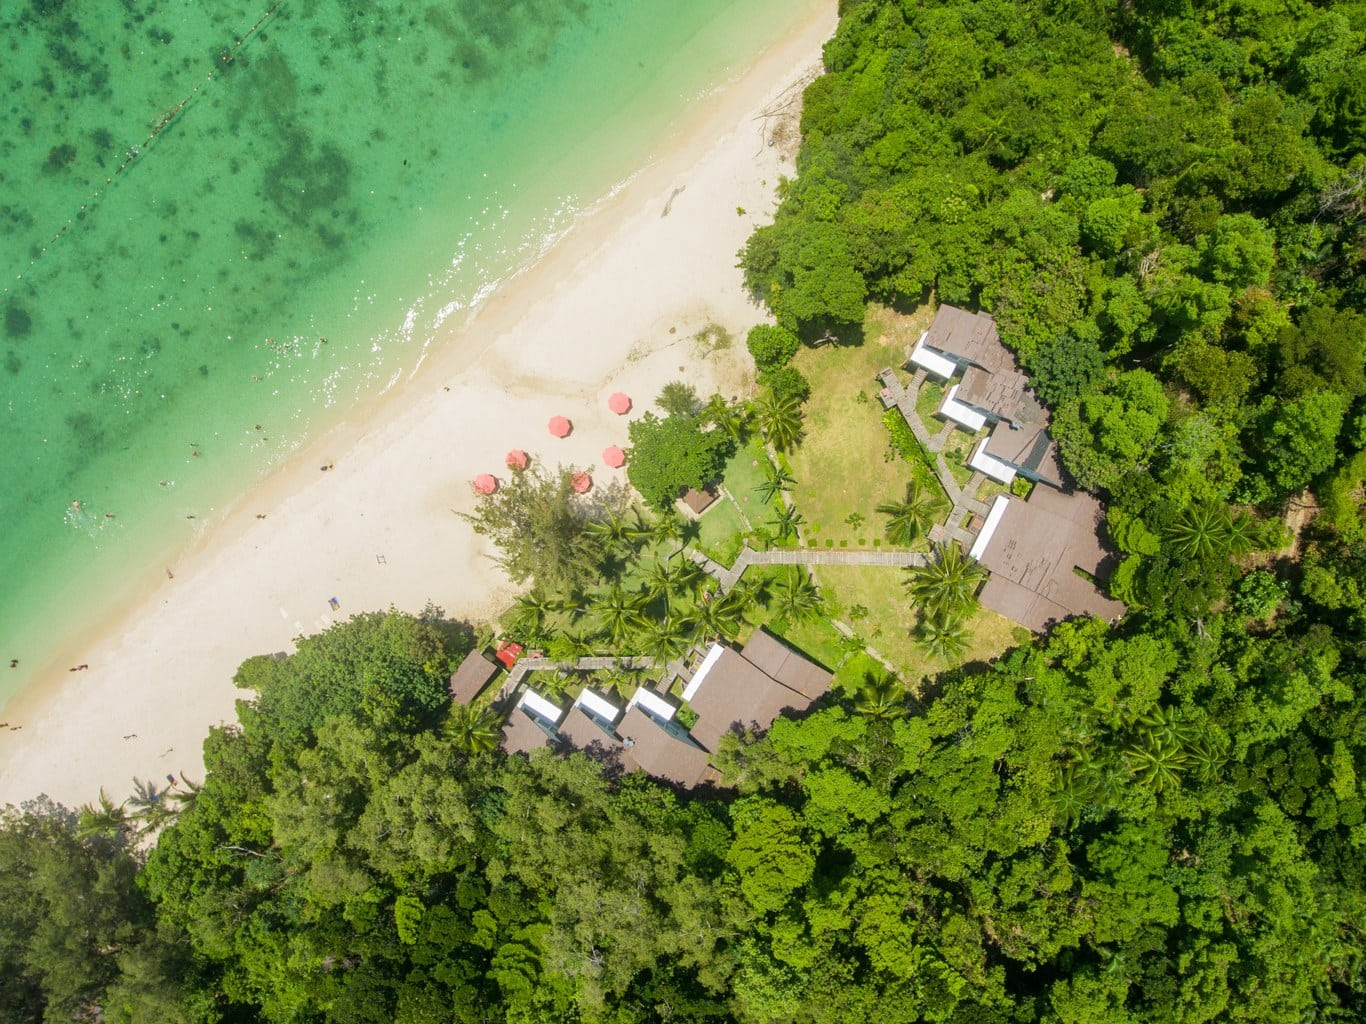 Drone of Manukan island resort